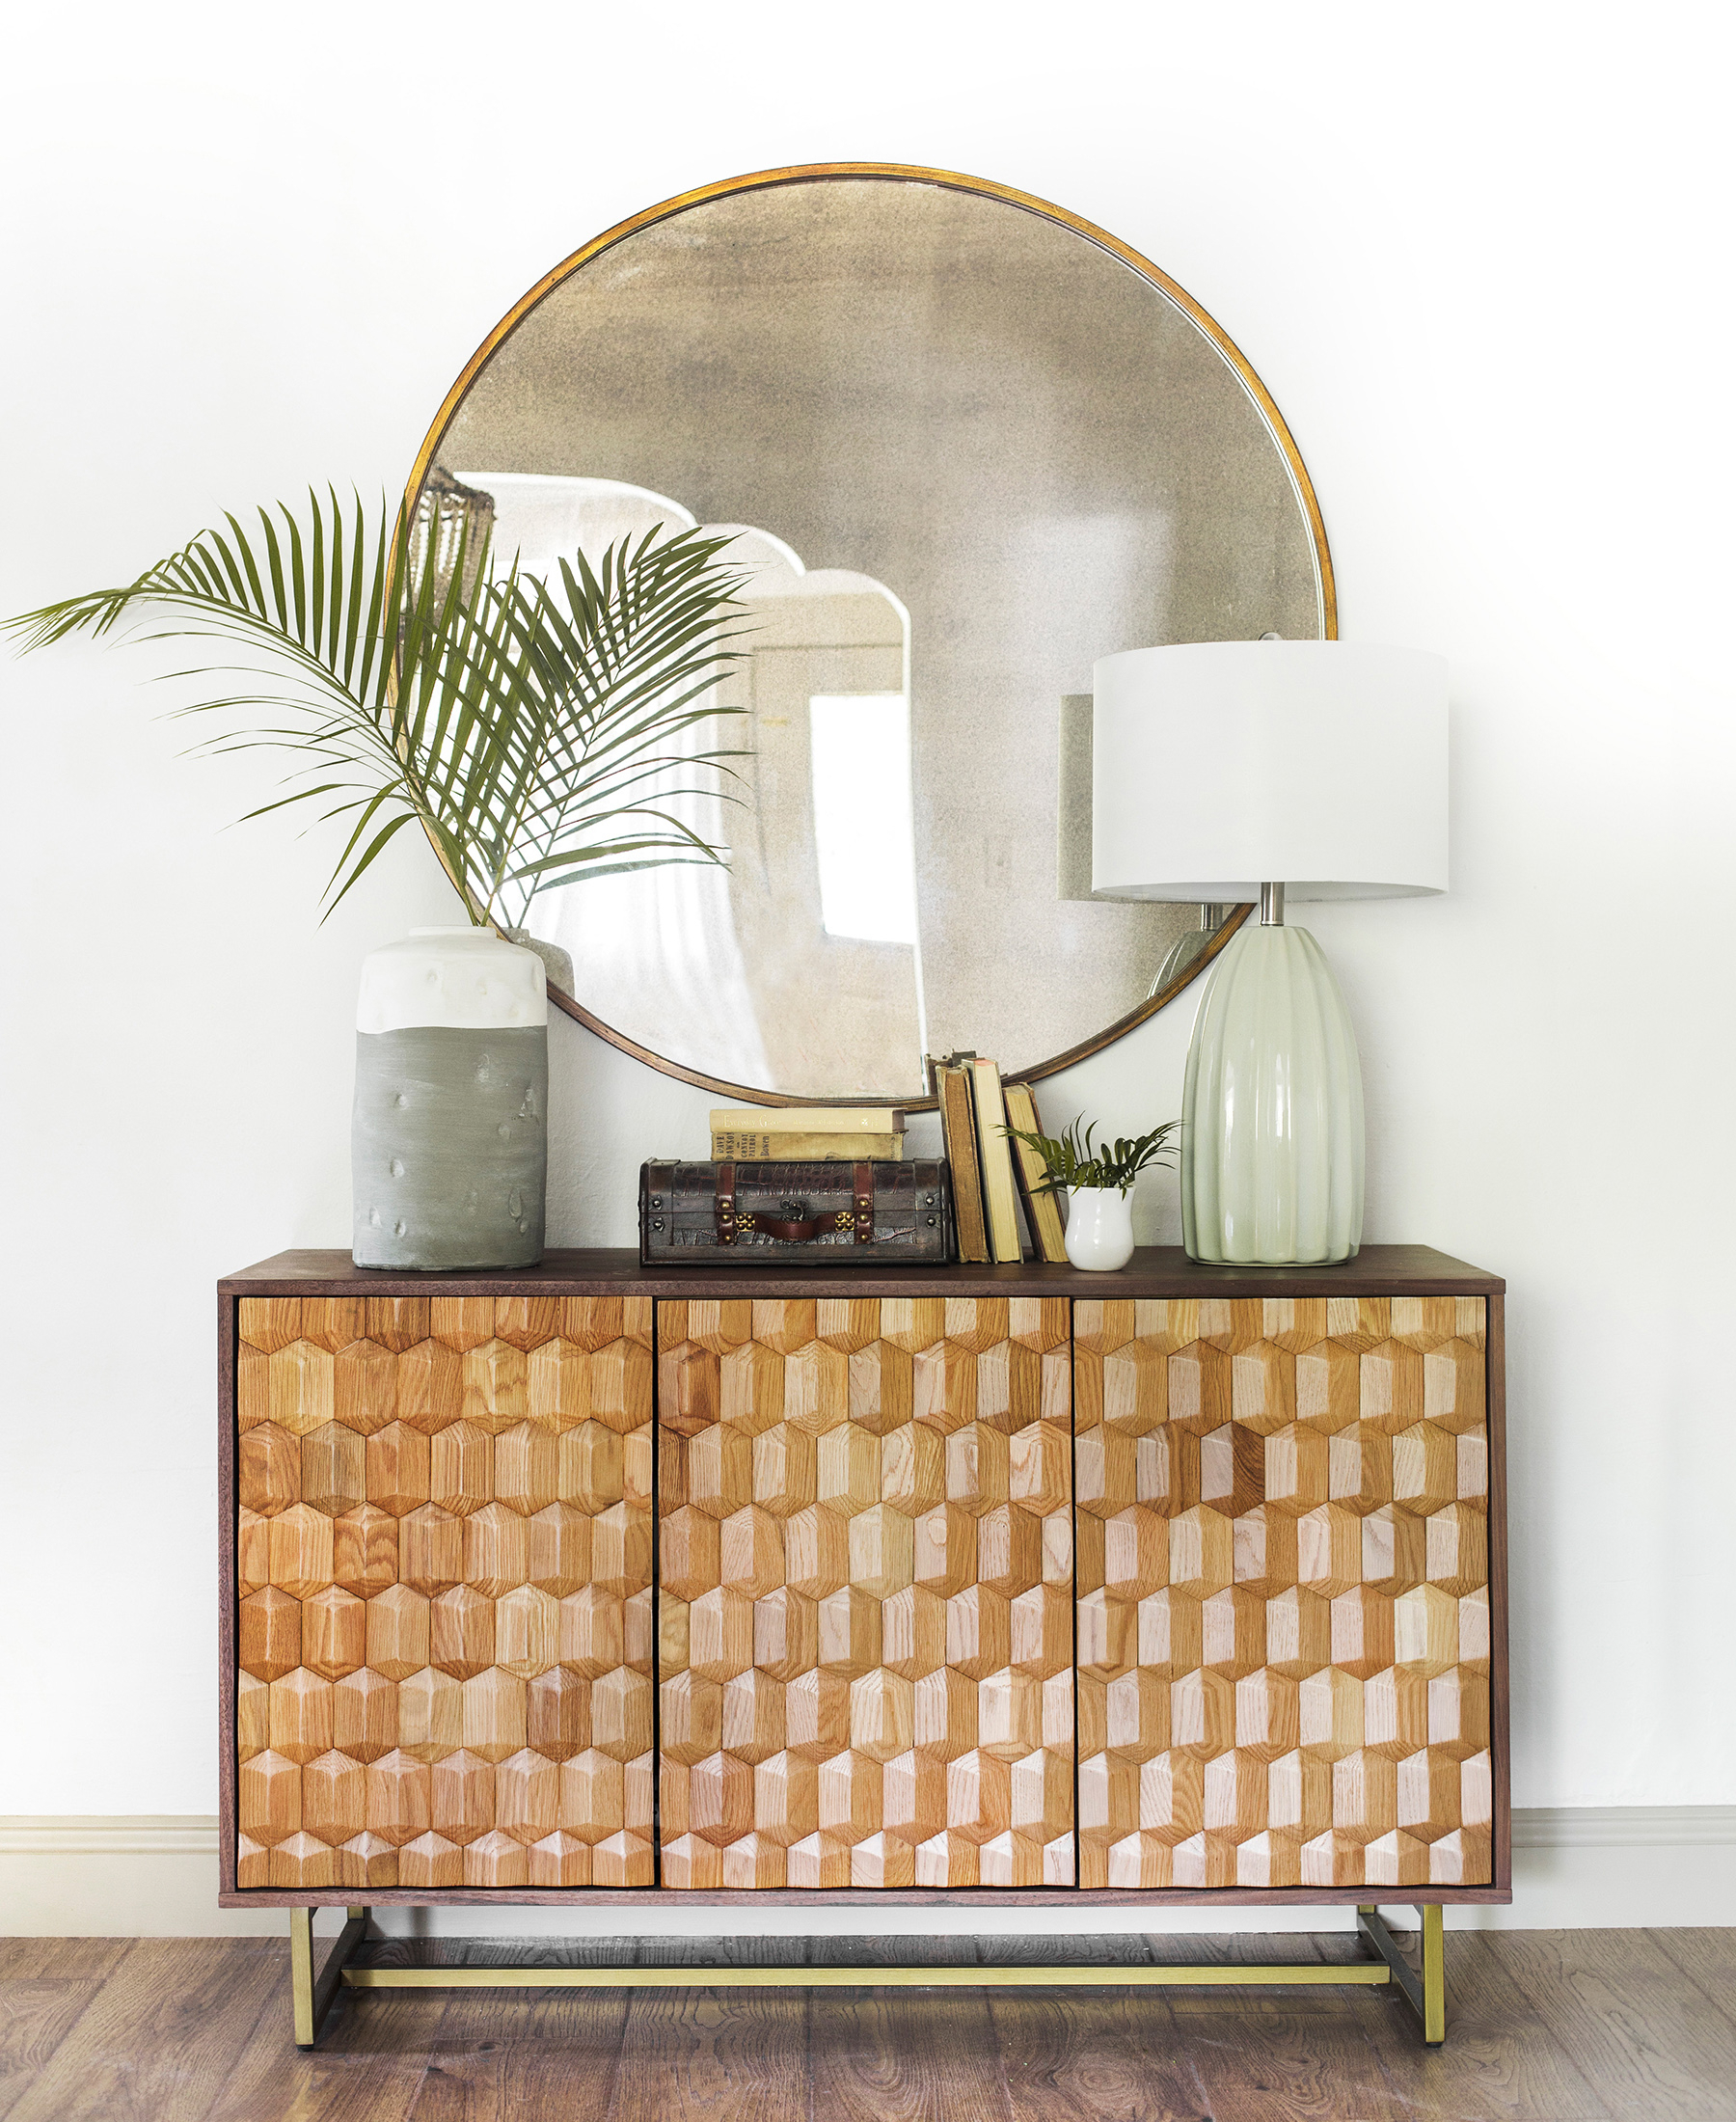 Living Room Storage Ideas: The Sideboard – Articulate Intended For Mid Century Modern Glossy White Buffets (View 17 of 30)